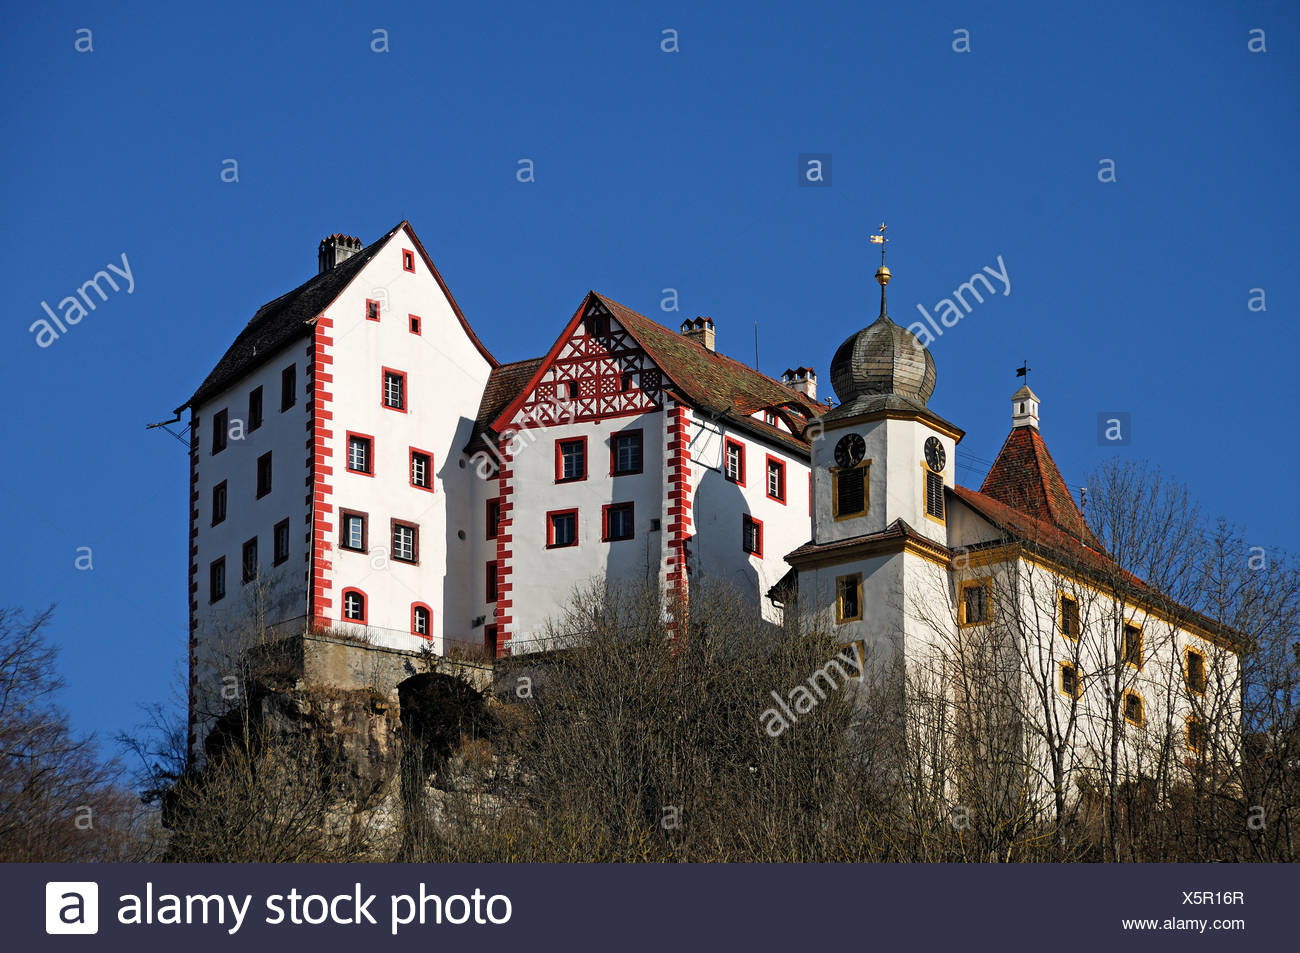 Burg Egloffstein Castle, mentioned in 1358, with castle capel from 1750, Egloffstein, Upper Franconia, Bavaria, Germany, Europe - Stock Image